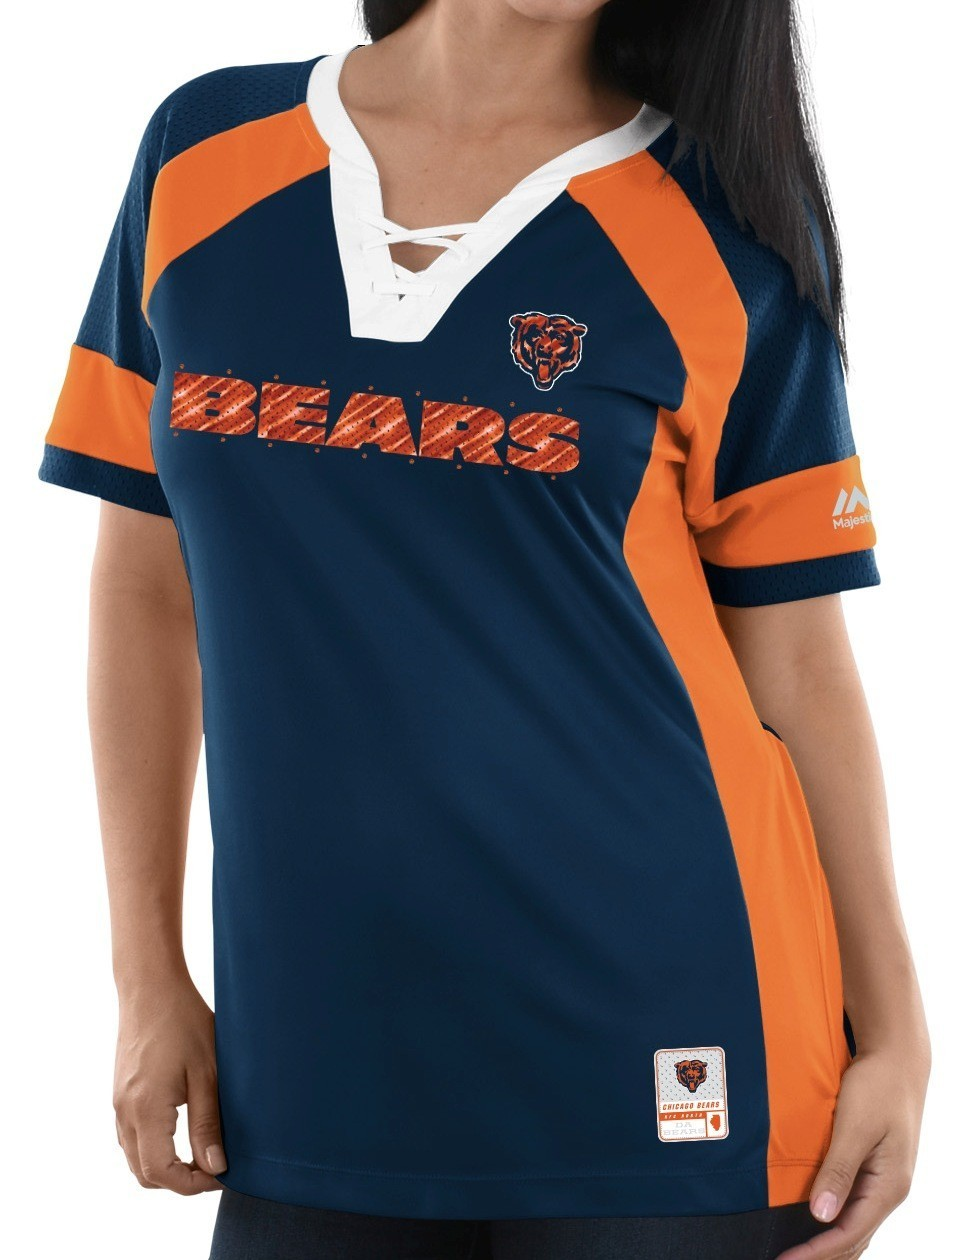 Chicago Bears Womens Majestic NFL quot;Draft Me 3quot; Jersey Top Shirt Navy